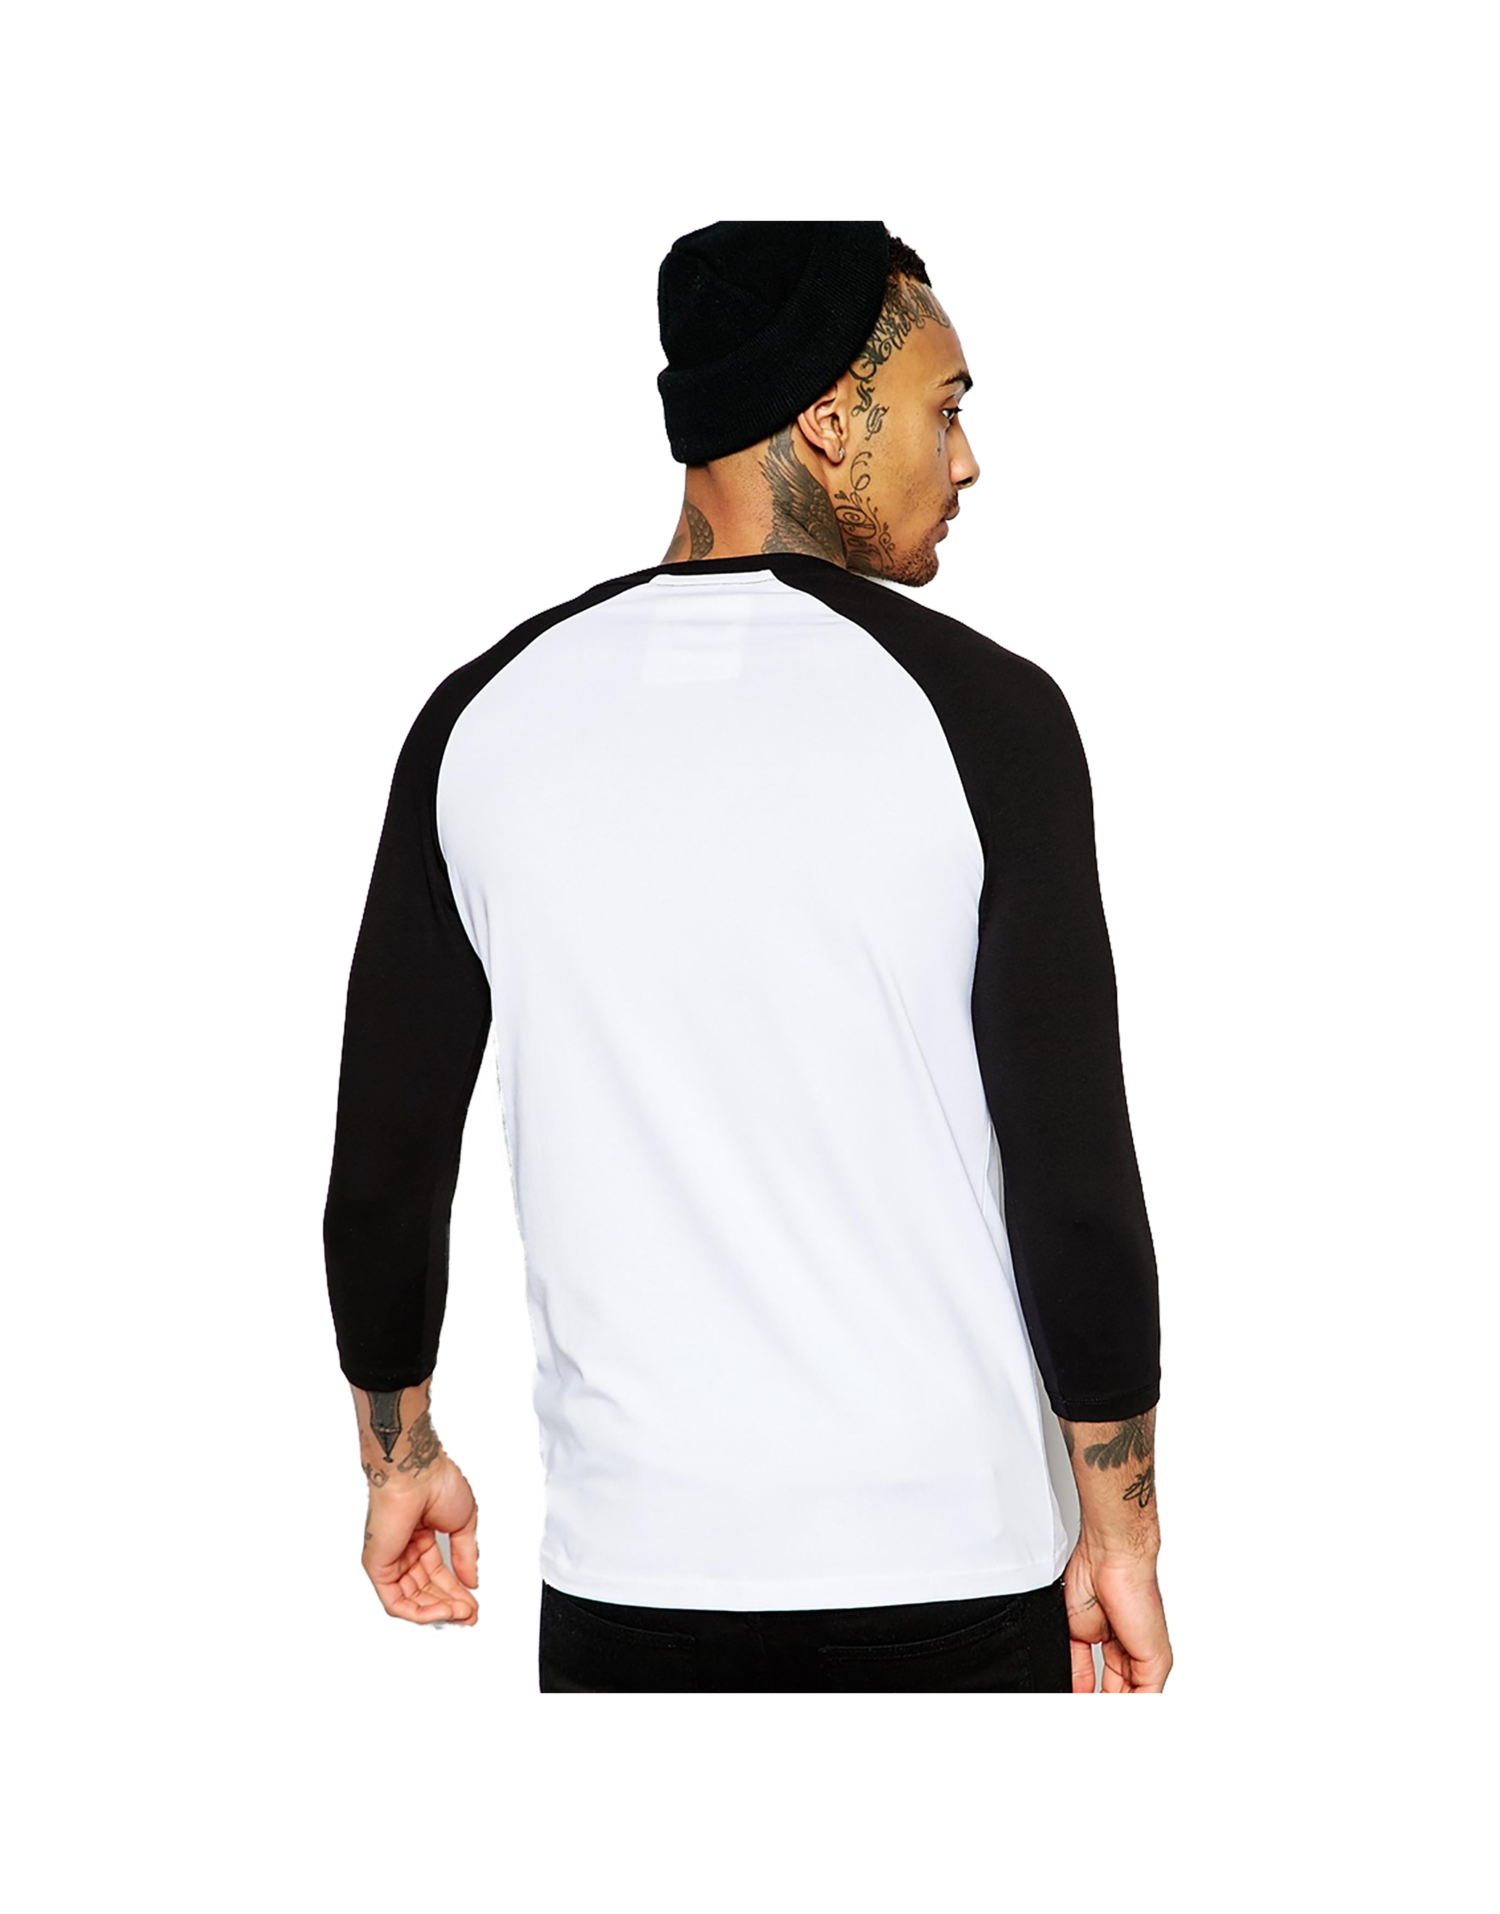 c1a9c679 White Black Contrast Raglan Long Sleeve T Shirt – EDGE Engineering ...